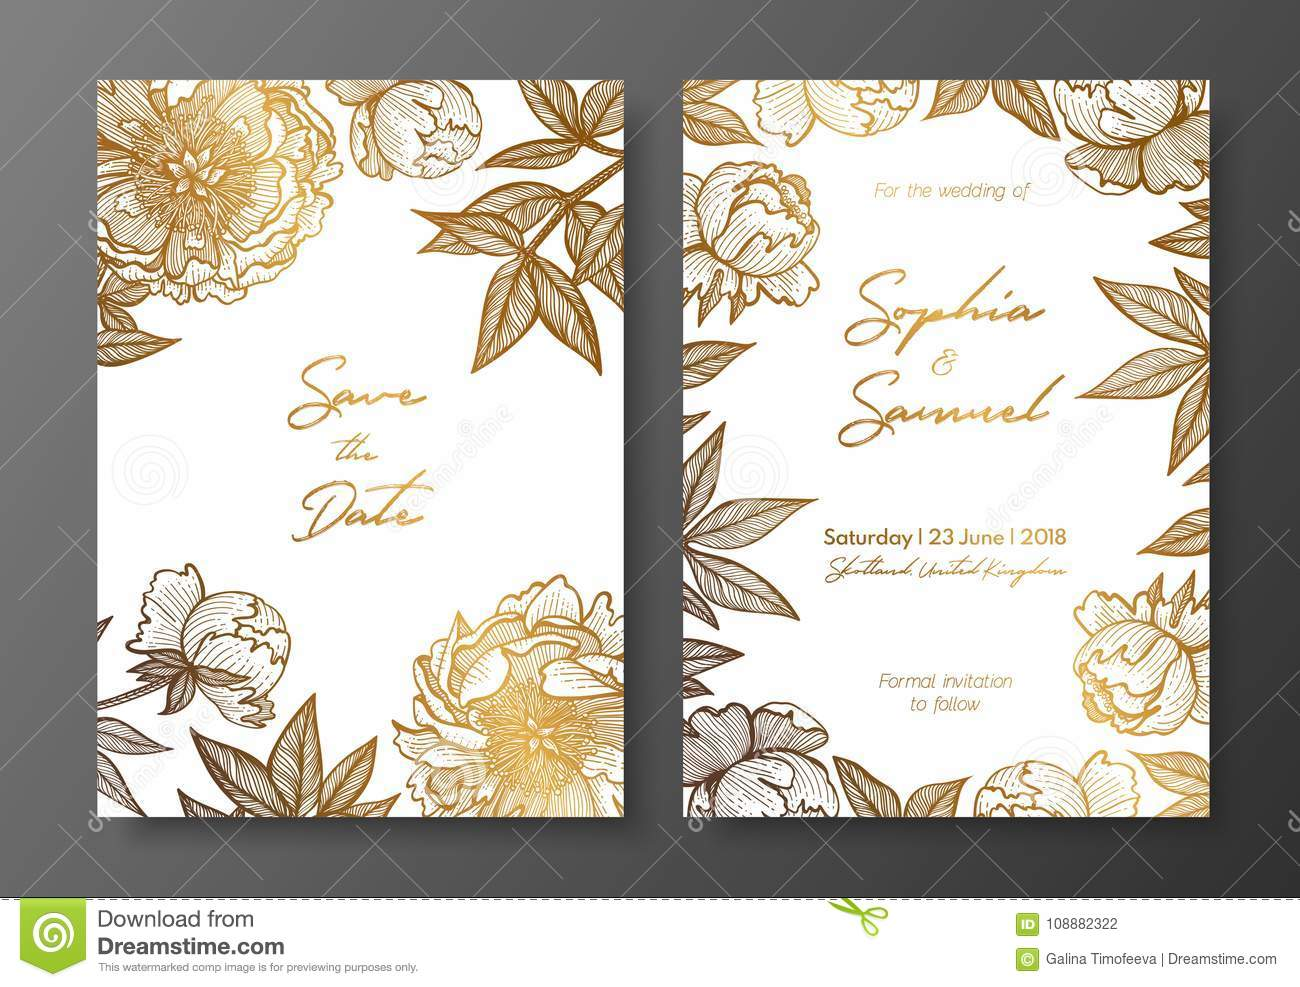 Gold Wedding Invitation With Peonies Gold Cards Templates For Save